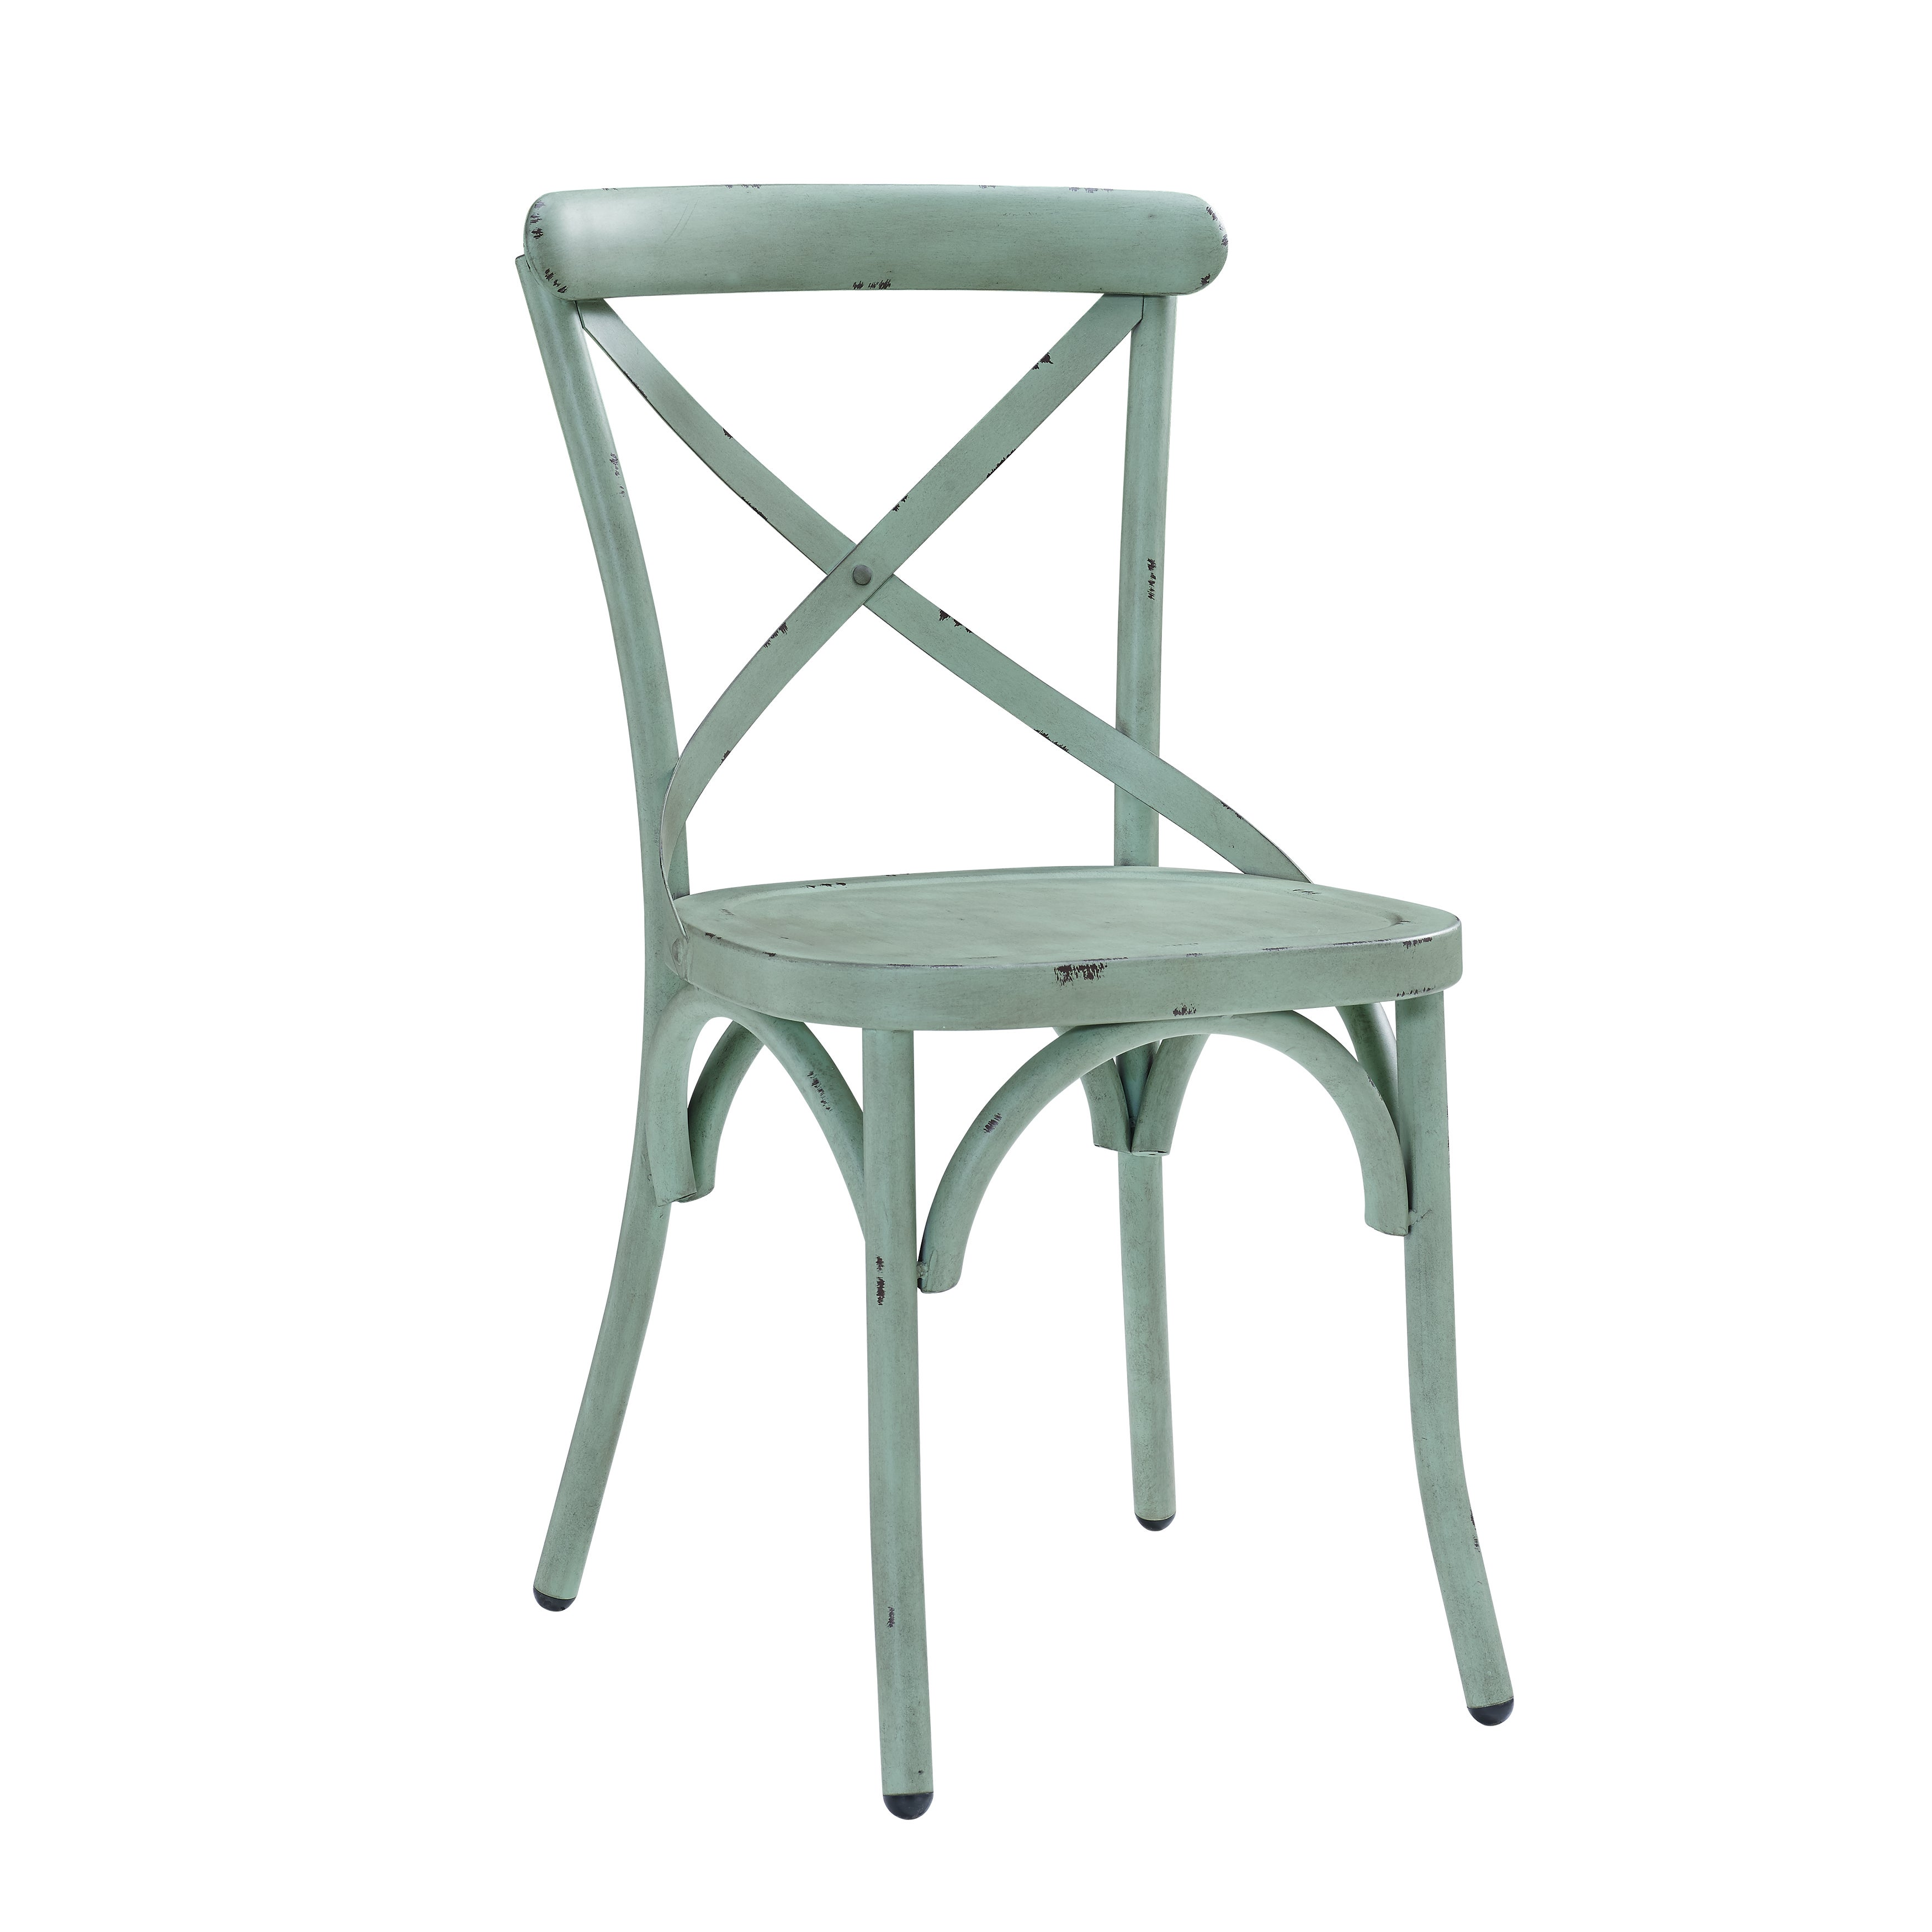 Distressed Antique Blue Metal Dining Chair - Free Shipping Today ...